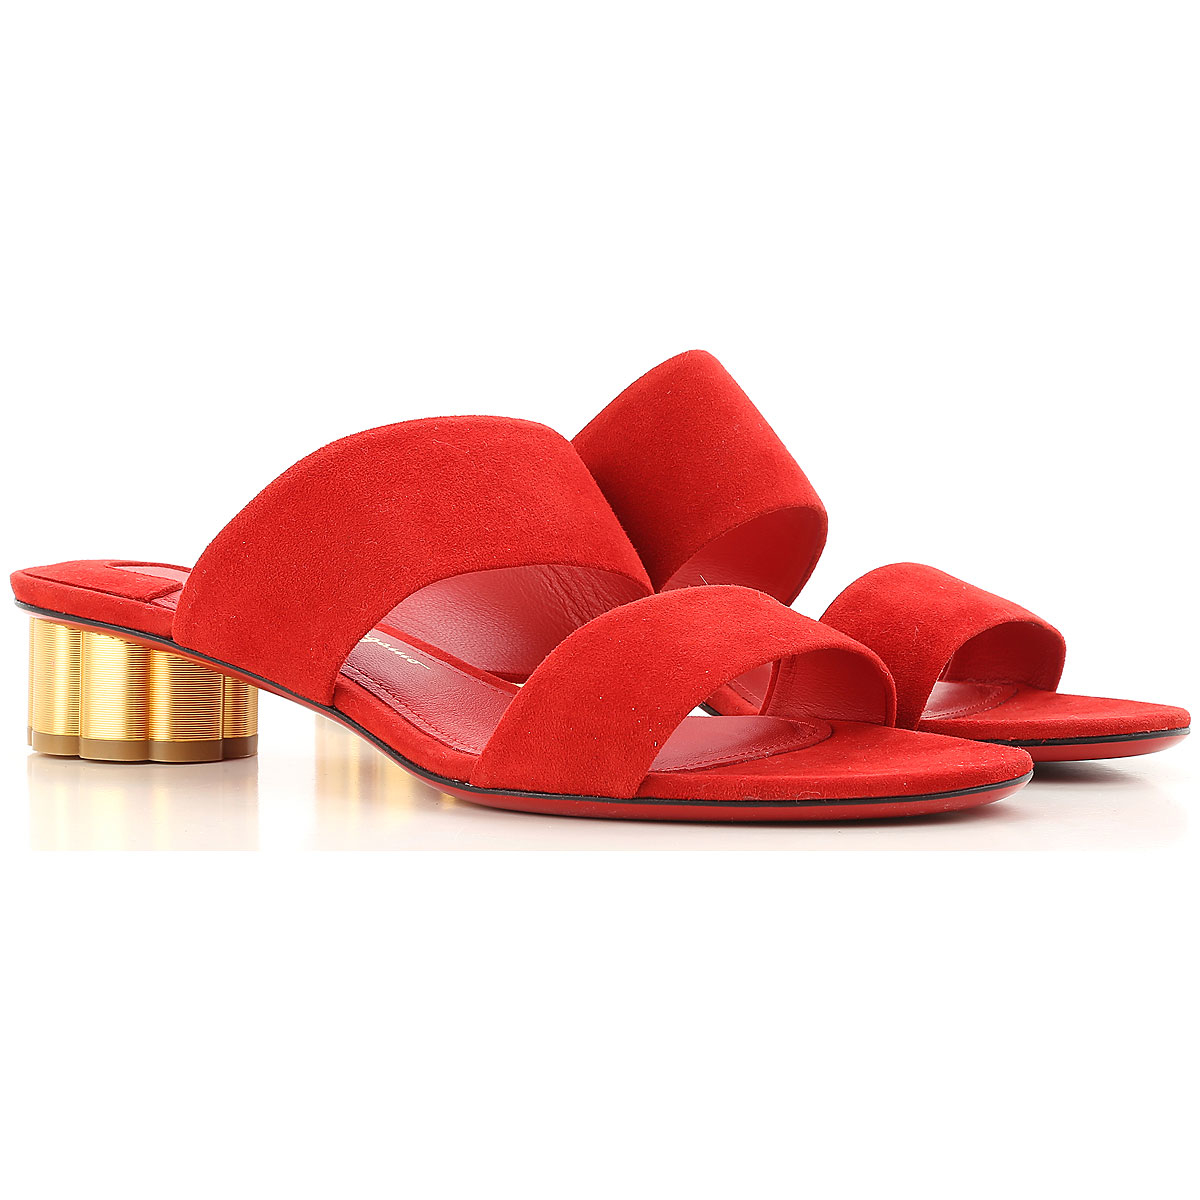 Salvatore Ferragamo Sandals for Women On Sale in Outlet Red UK - GOOFASH